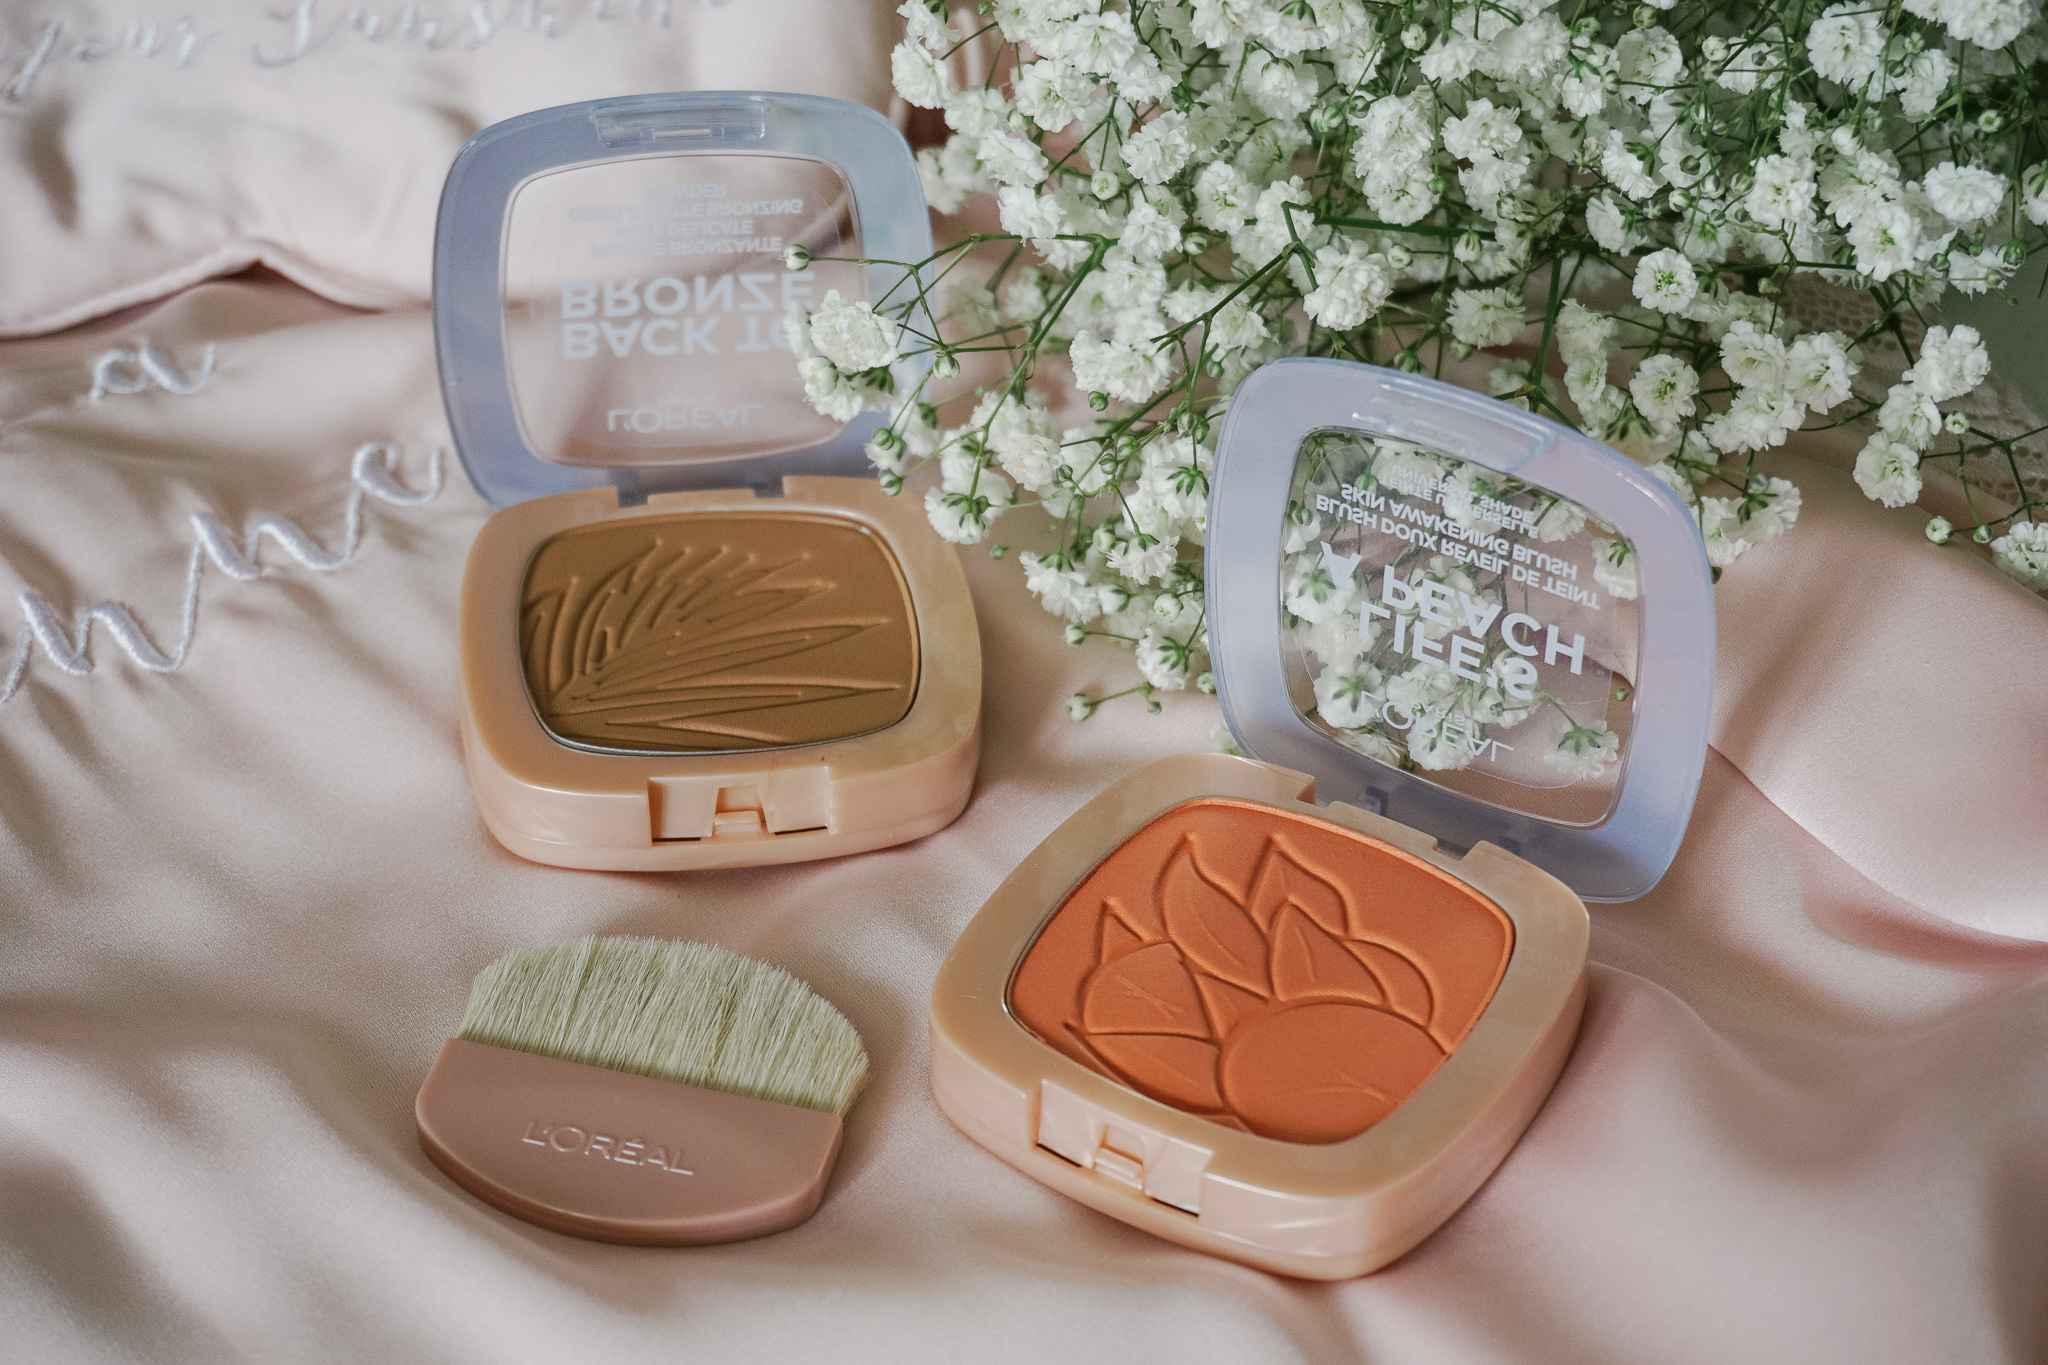 LIFE'S A PEACH BLUSH BACK TO BRONZE GENTLE MATTE BRONZING POWDER L'Oreal Review